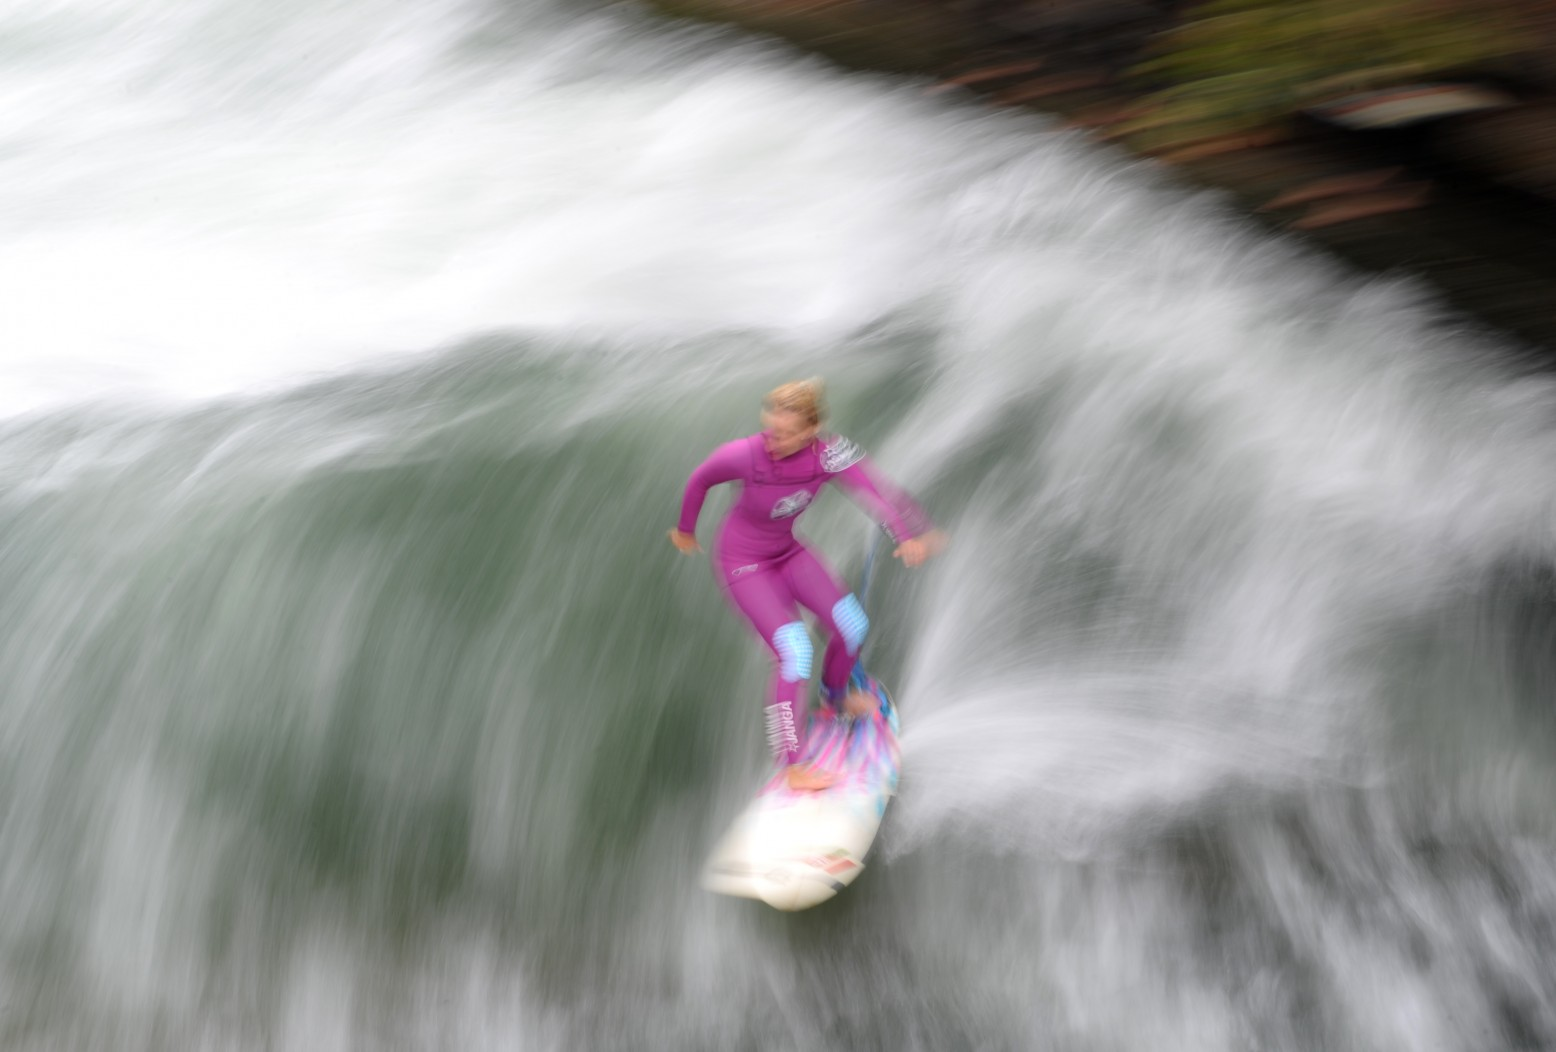 GERMANY-WEATHER-FEATURE-SURFER